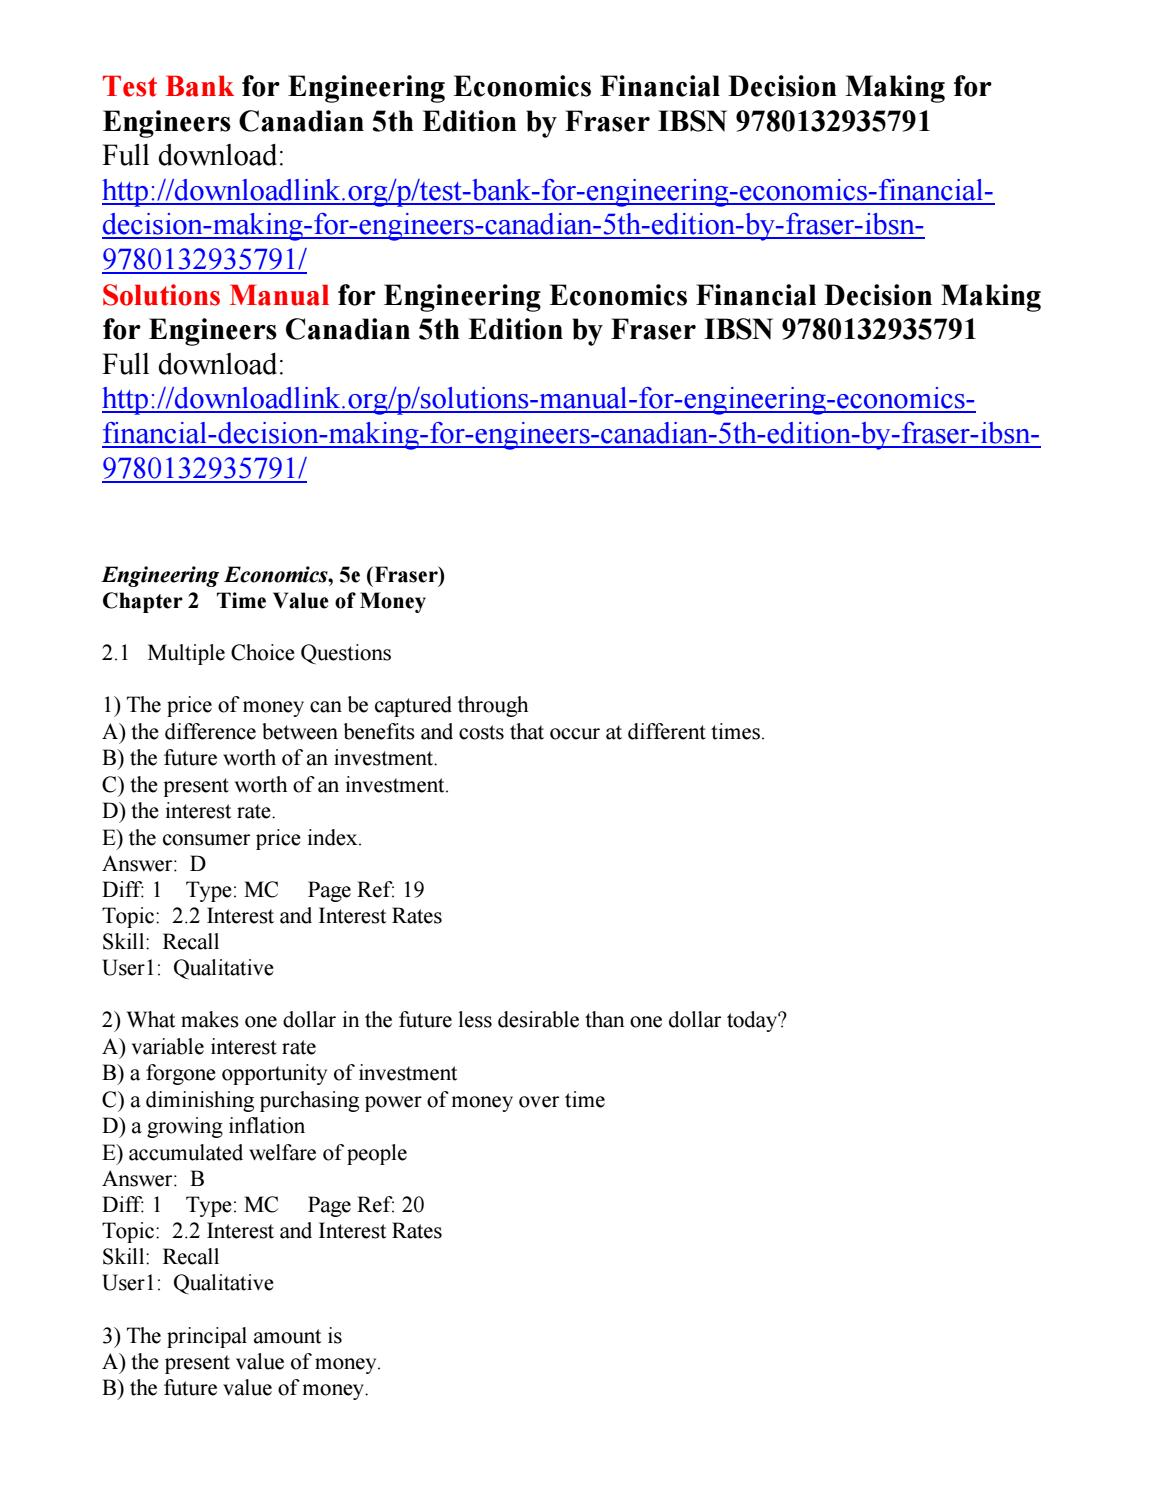 time value of money multiple choice questions and answers